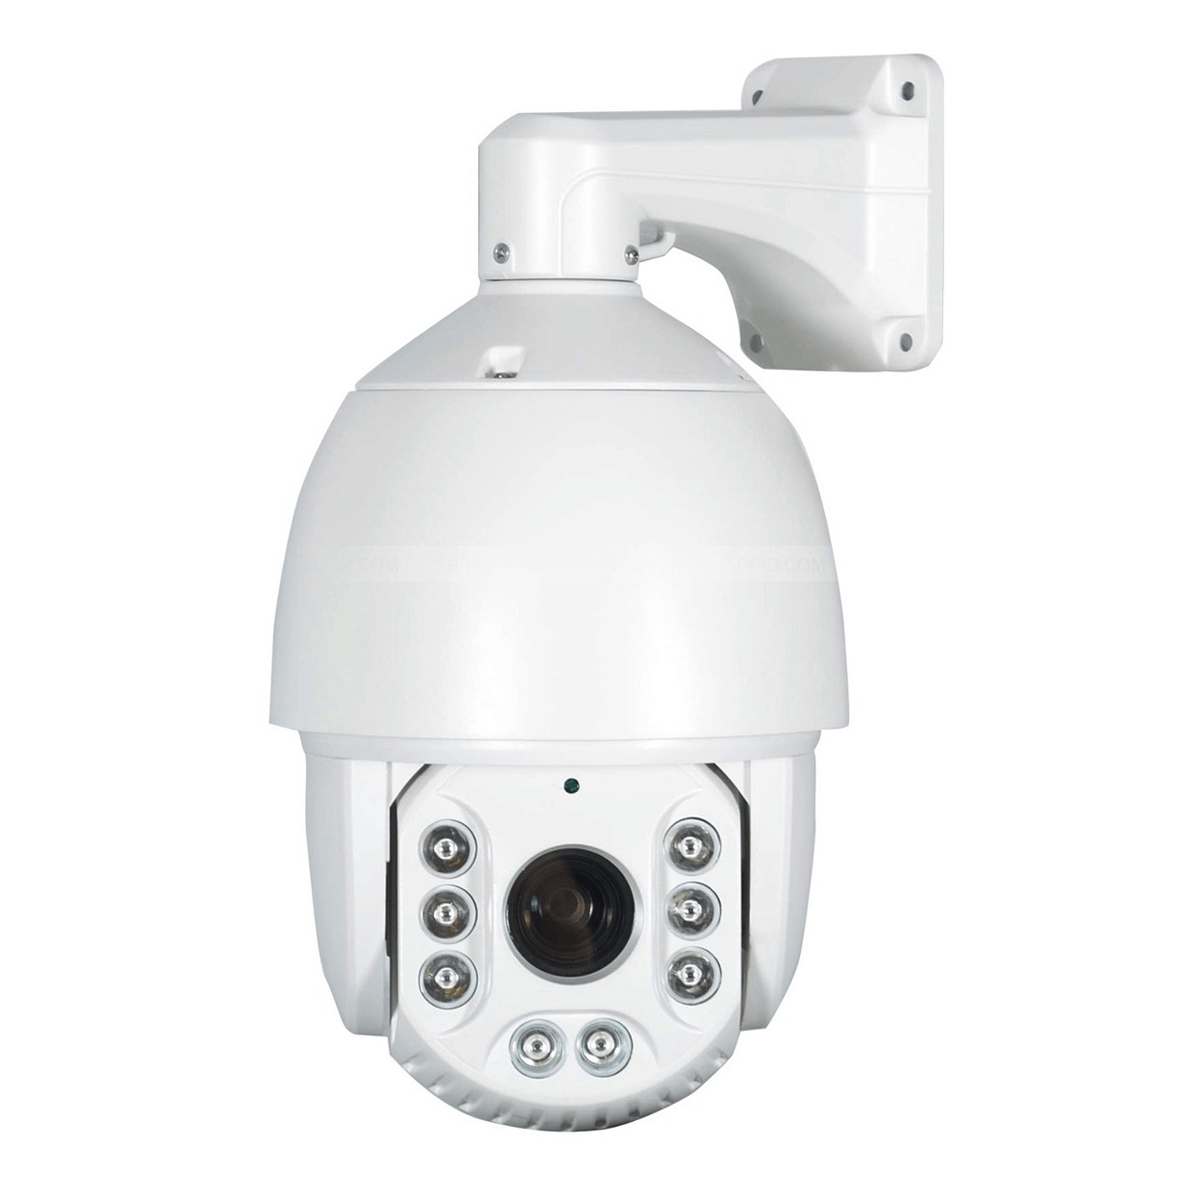 Câmera IP Speed Dome 1.3 MP 960p Zoom 22x